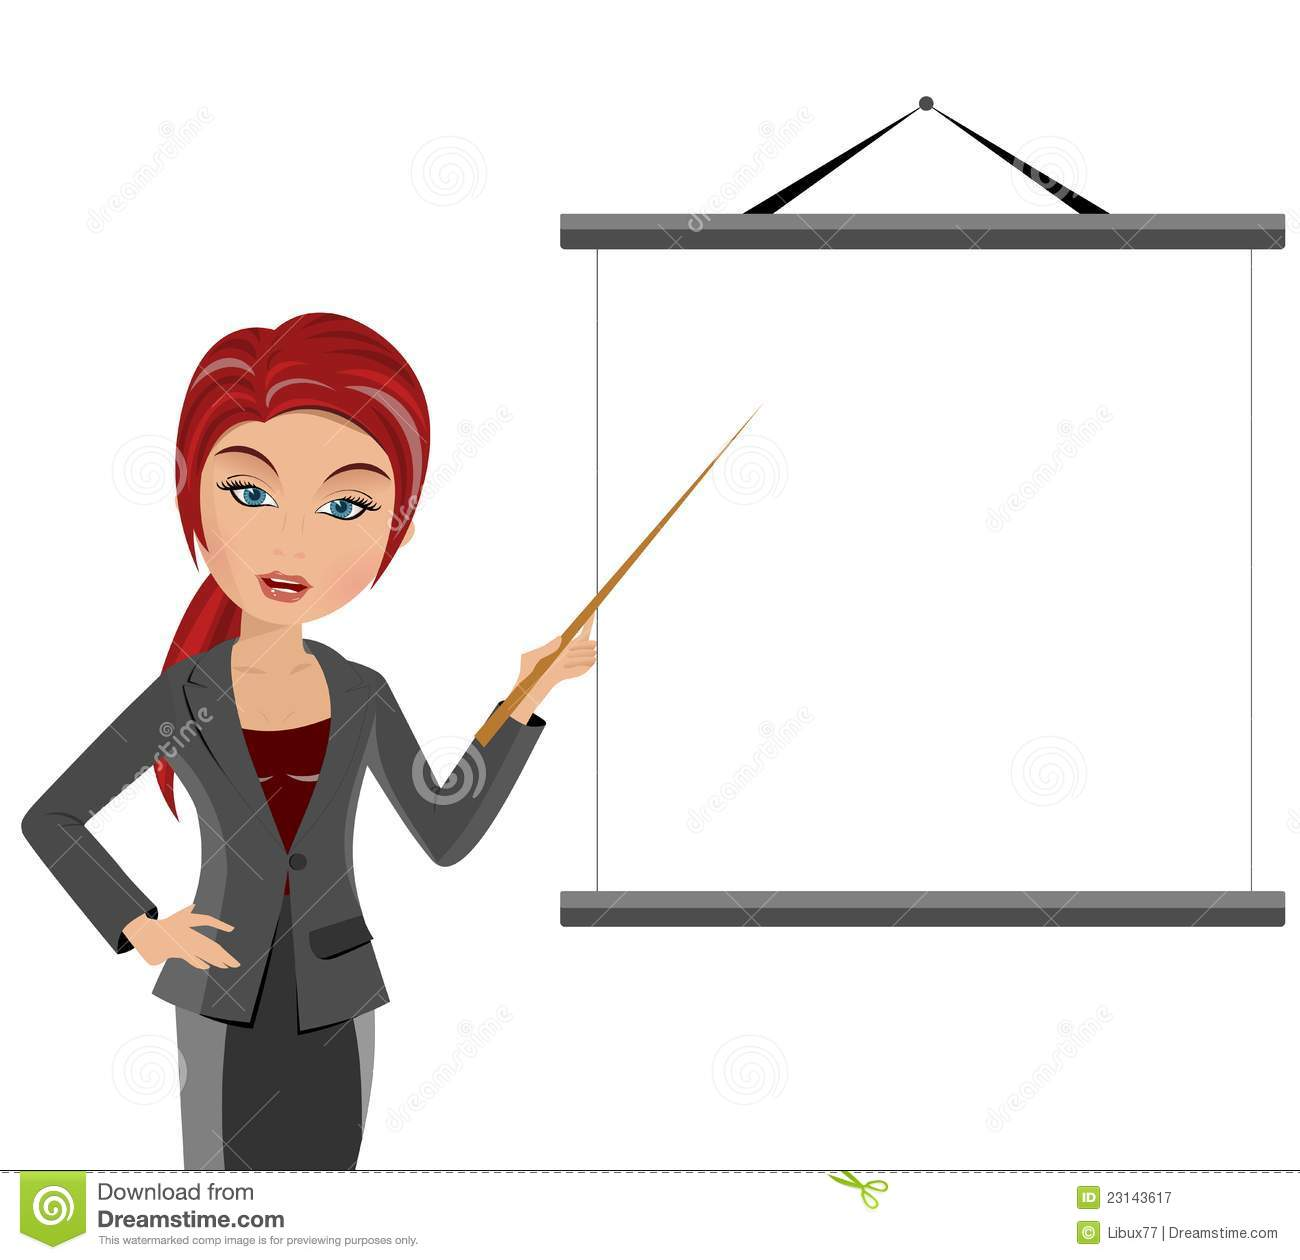 Classroom pointer clipart png library library Classroom pointer clipart - ClipartFest png library library